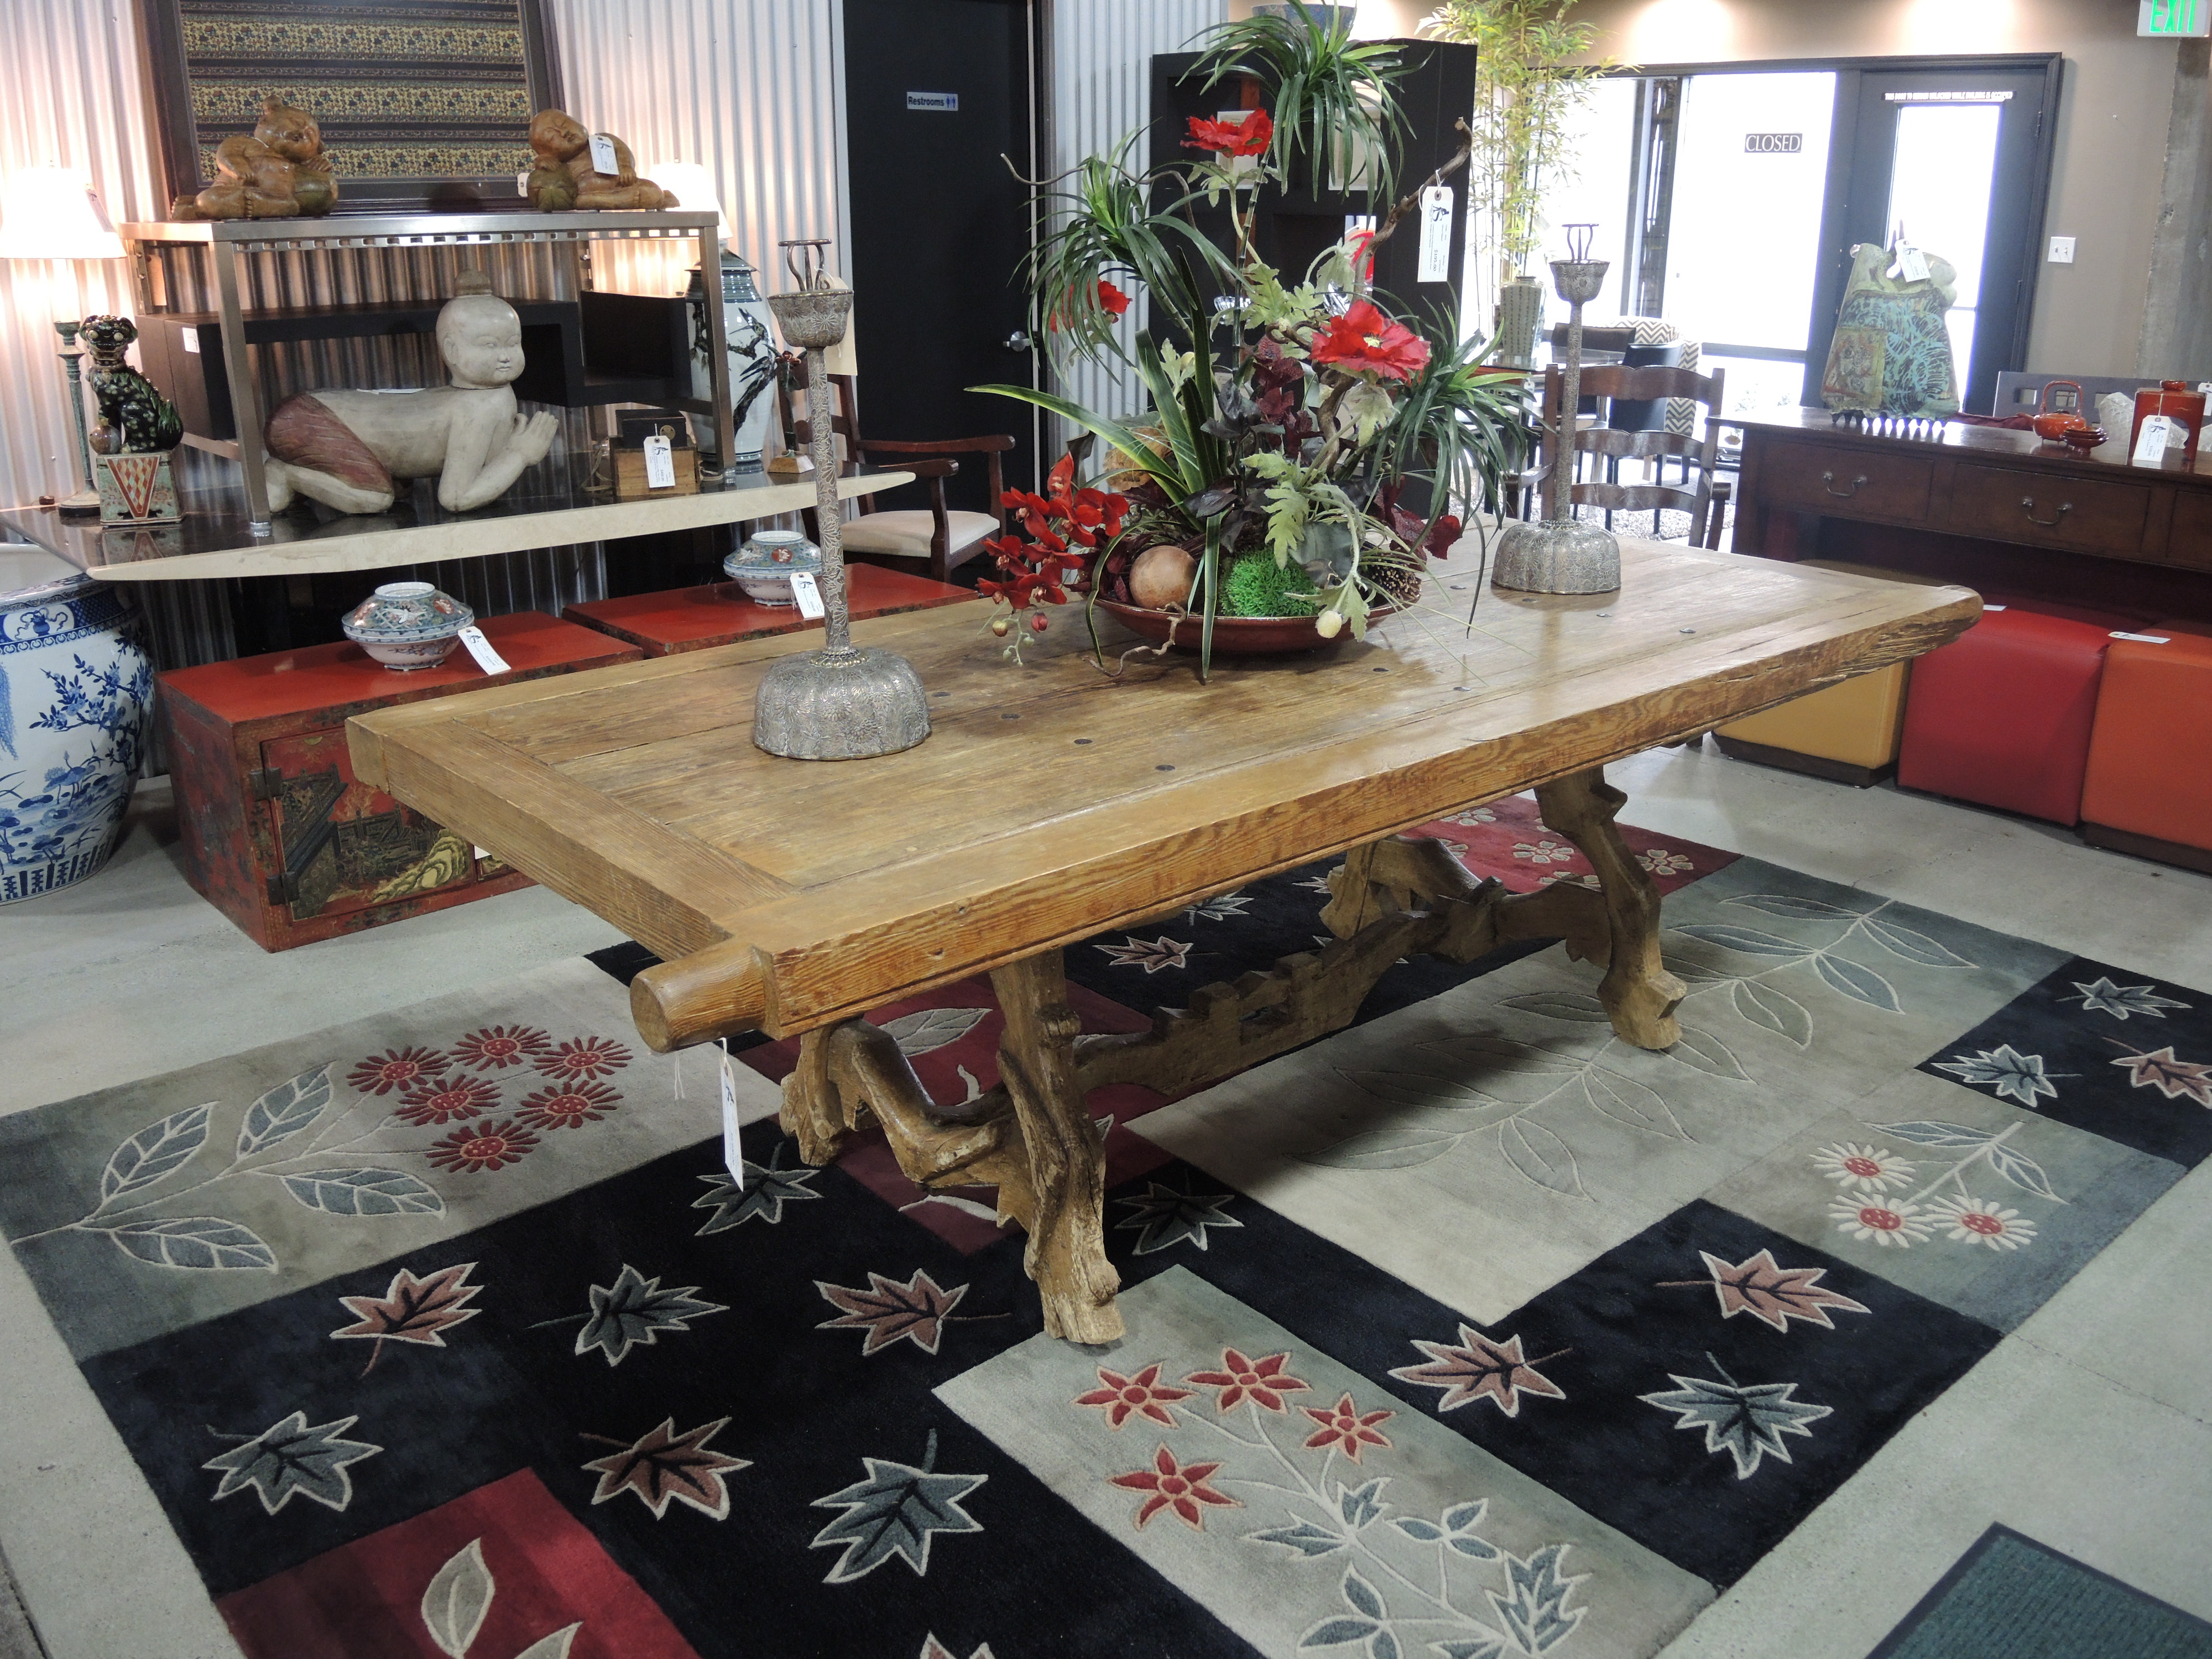 Dining table made from old door - Two Statement Pieces A Beautiful Old Door And An Oxen Yoke Come Together To Create This Magnificent Farm Table Sure To Bring A Conversation Out Of